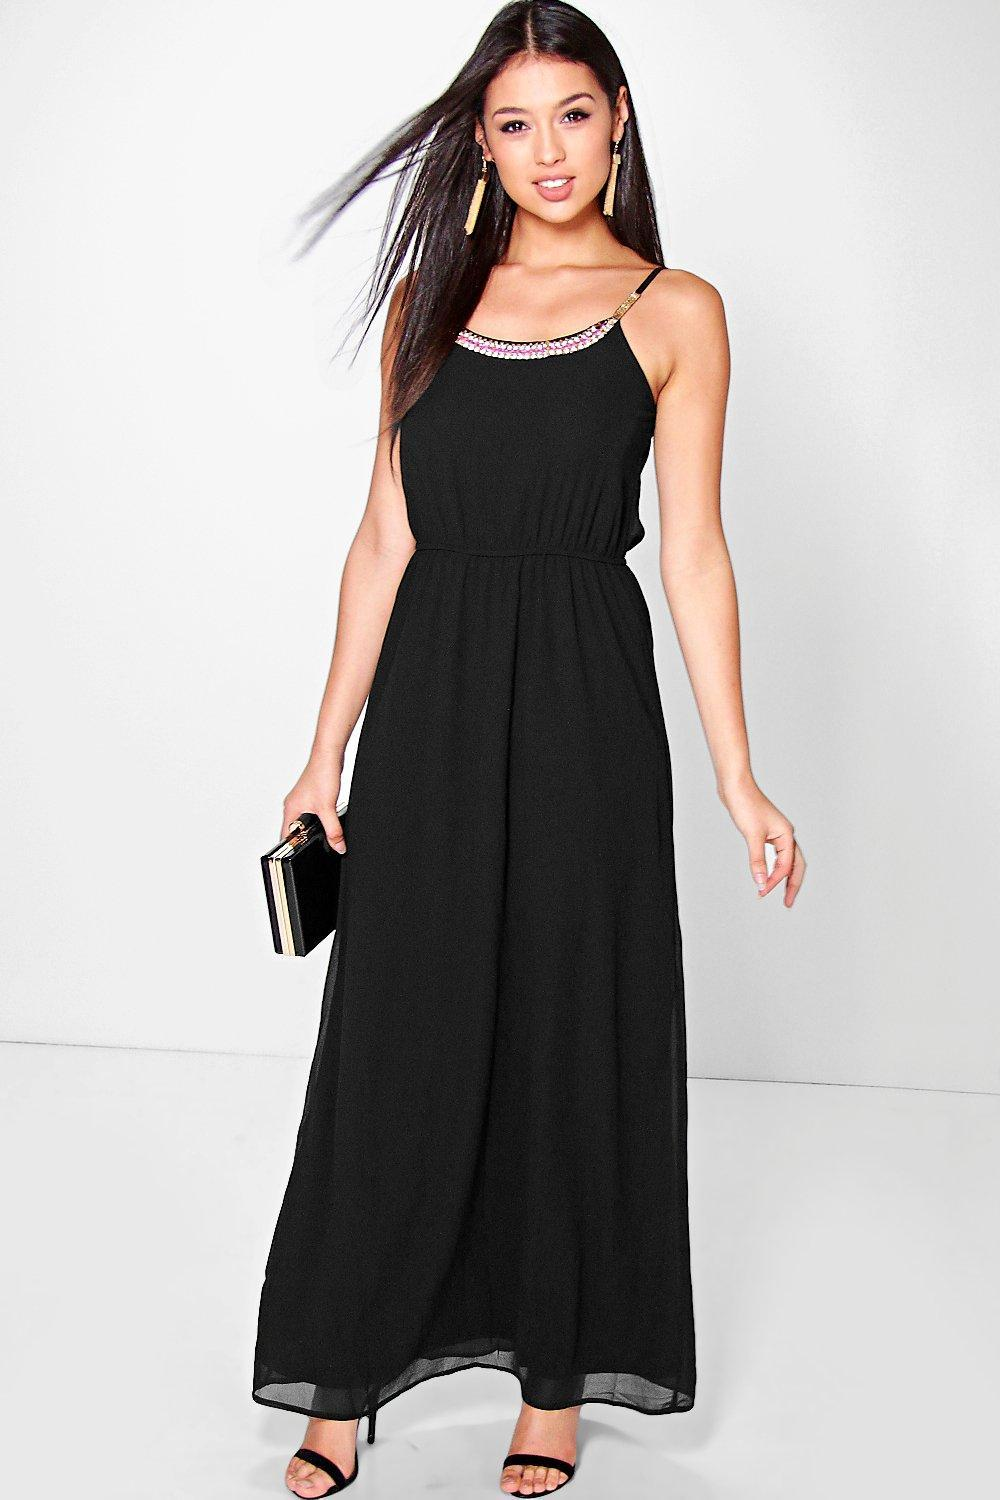 Embellished Neck Maxi Dress Coral - sleeve style: spaghetti straps; pattern: plain; style: maxi dress; length: ankle length; waist detail: belted waist/tie at waist/drawstring; predominant colour: black; occasions: evening; fit: body skimming; neckline: scoop; fibres: polyester/polyamide - 100%; sleeve length: sleeveless; pattern type: fabric; texture group: jersey - stretchy/drapey; season: s/s 2016; wardrobe: event